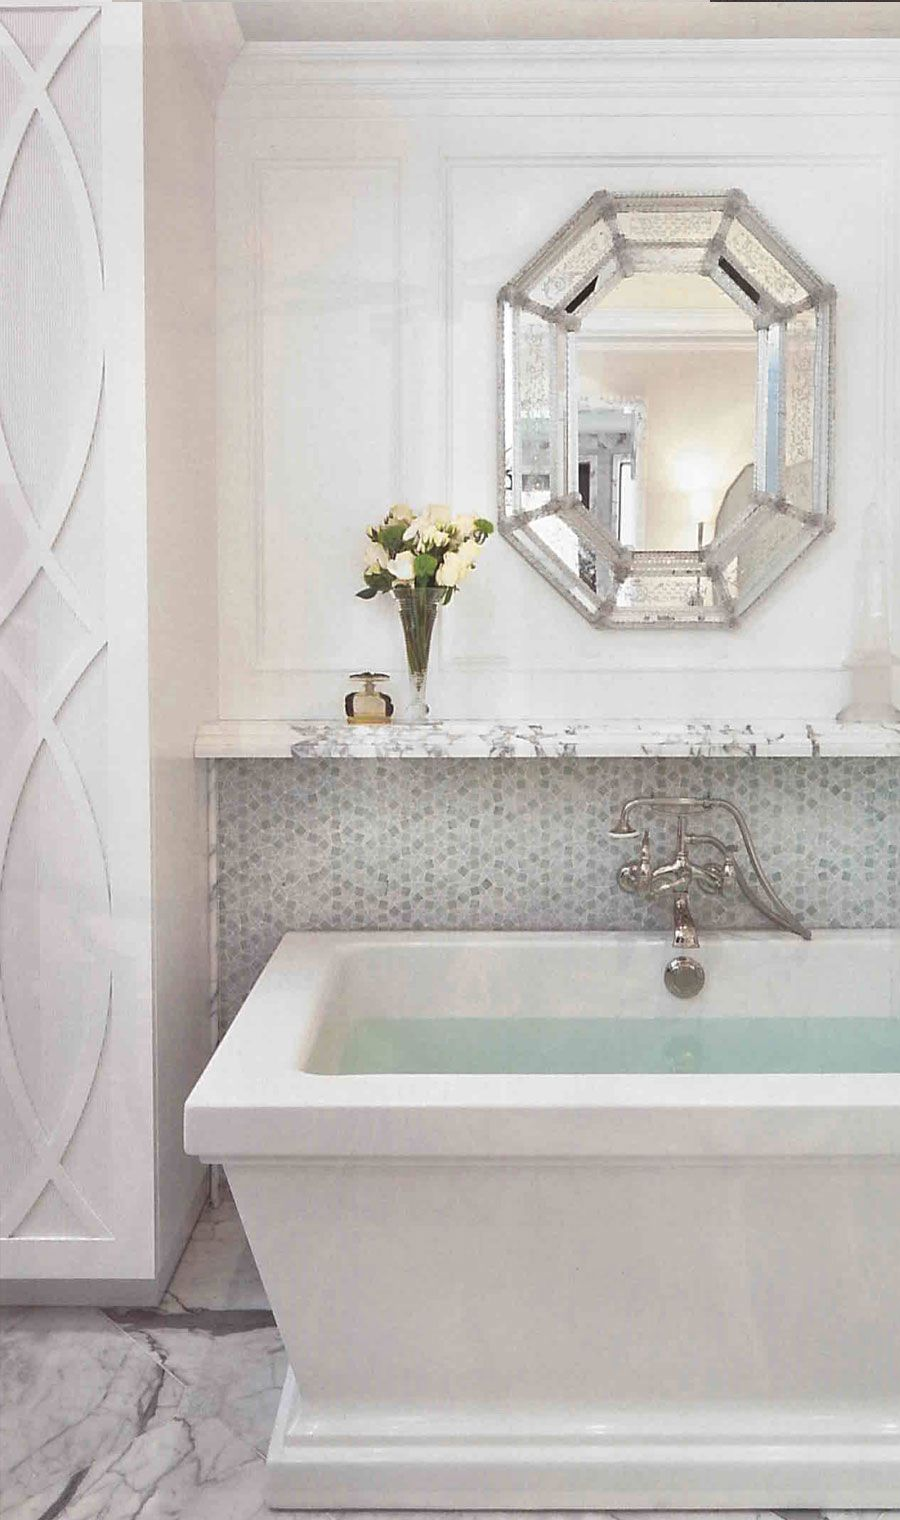 Venetian Mirrors Venetian Glass Mirrors From Murano Island Bathroom Inspiration Beautiful Bathrooms Bathroom Design